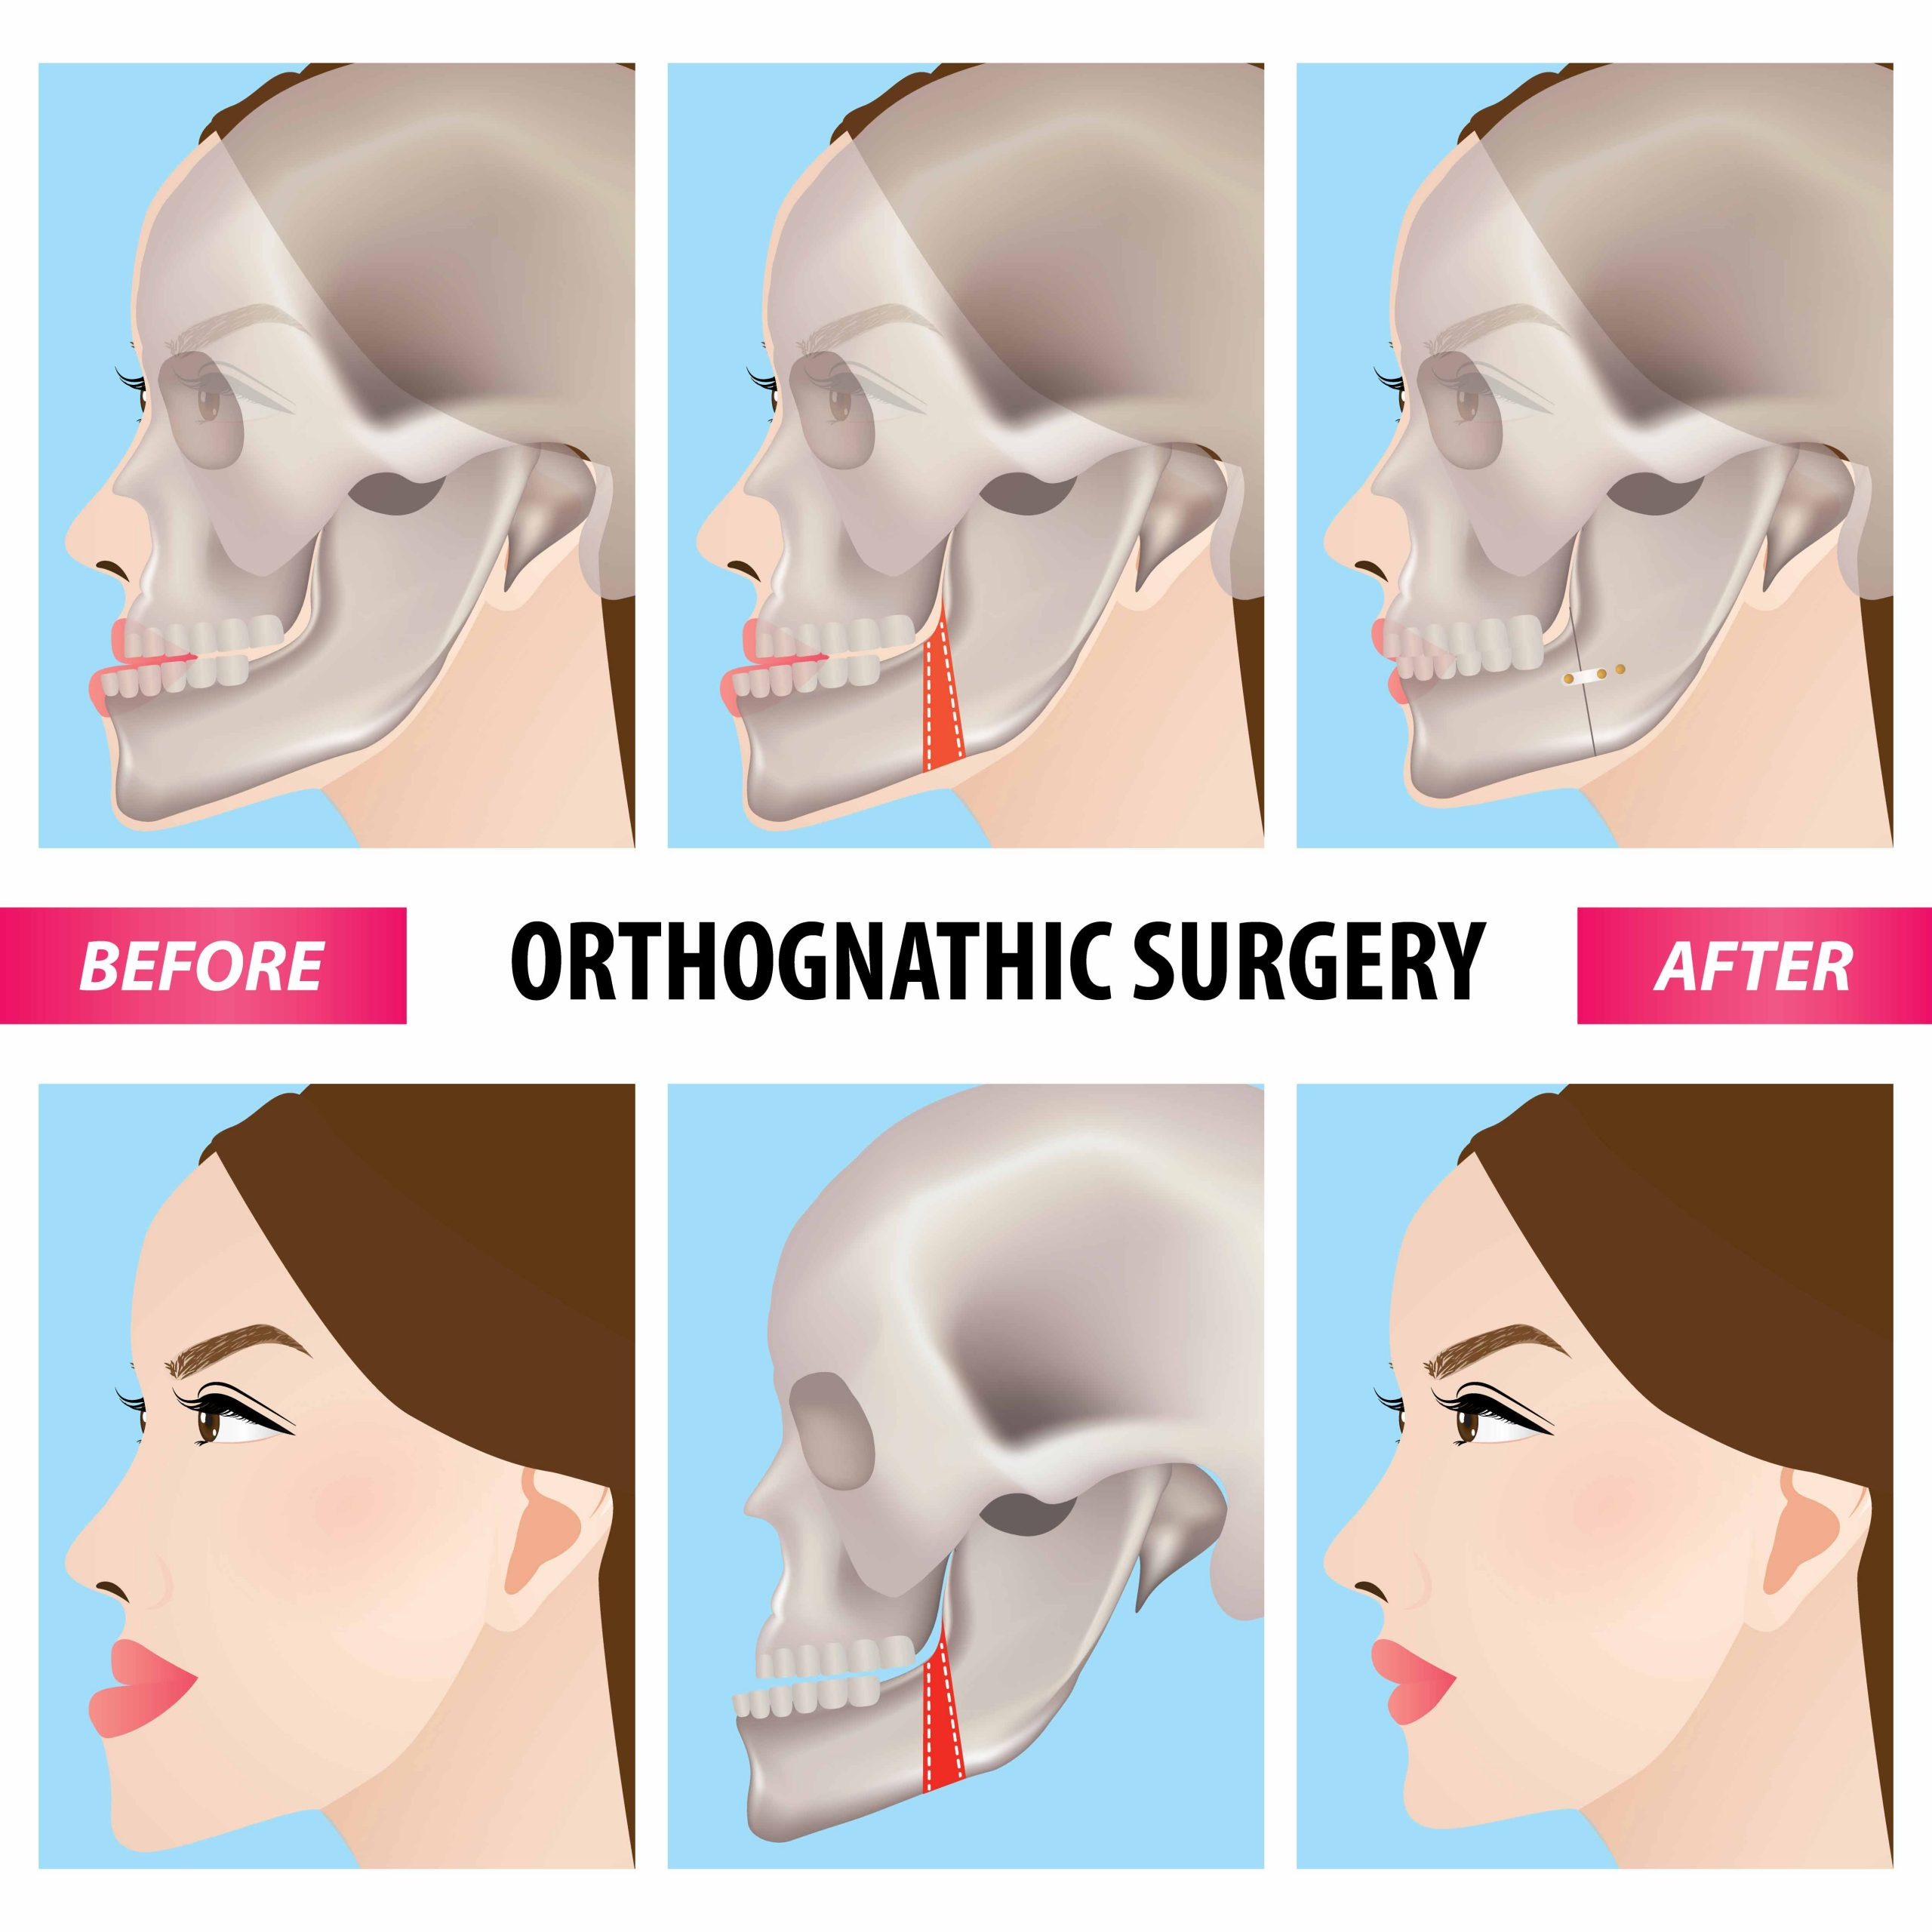 Orthognathic-Surgery-Jaw-Straightening-1